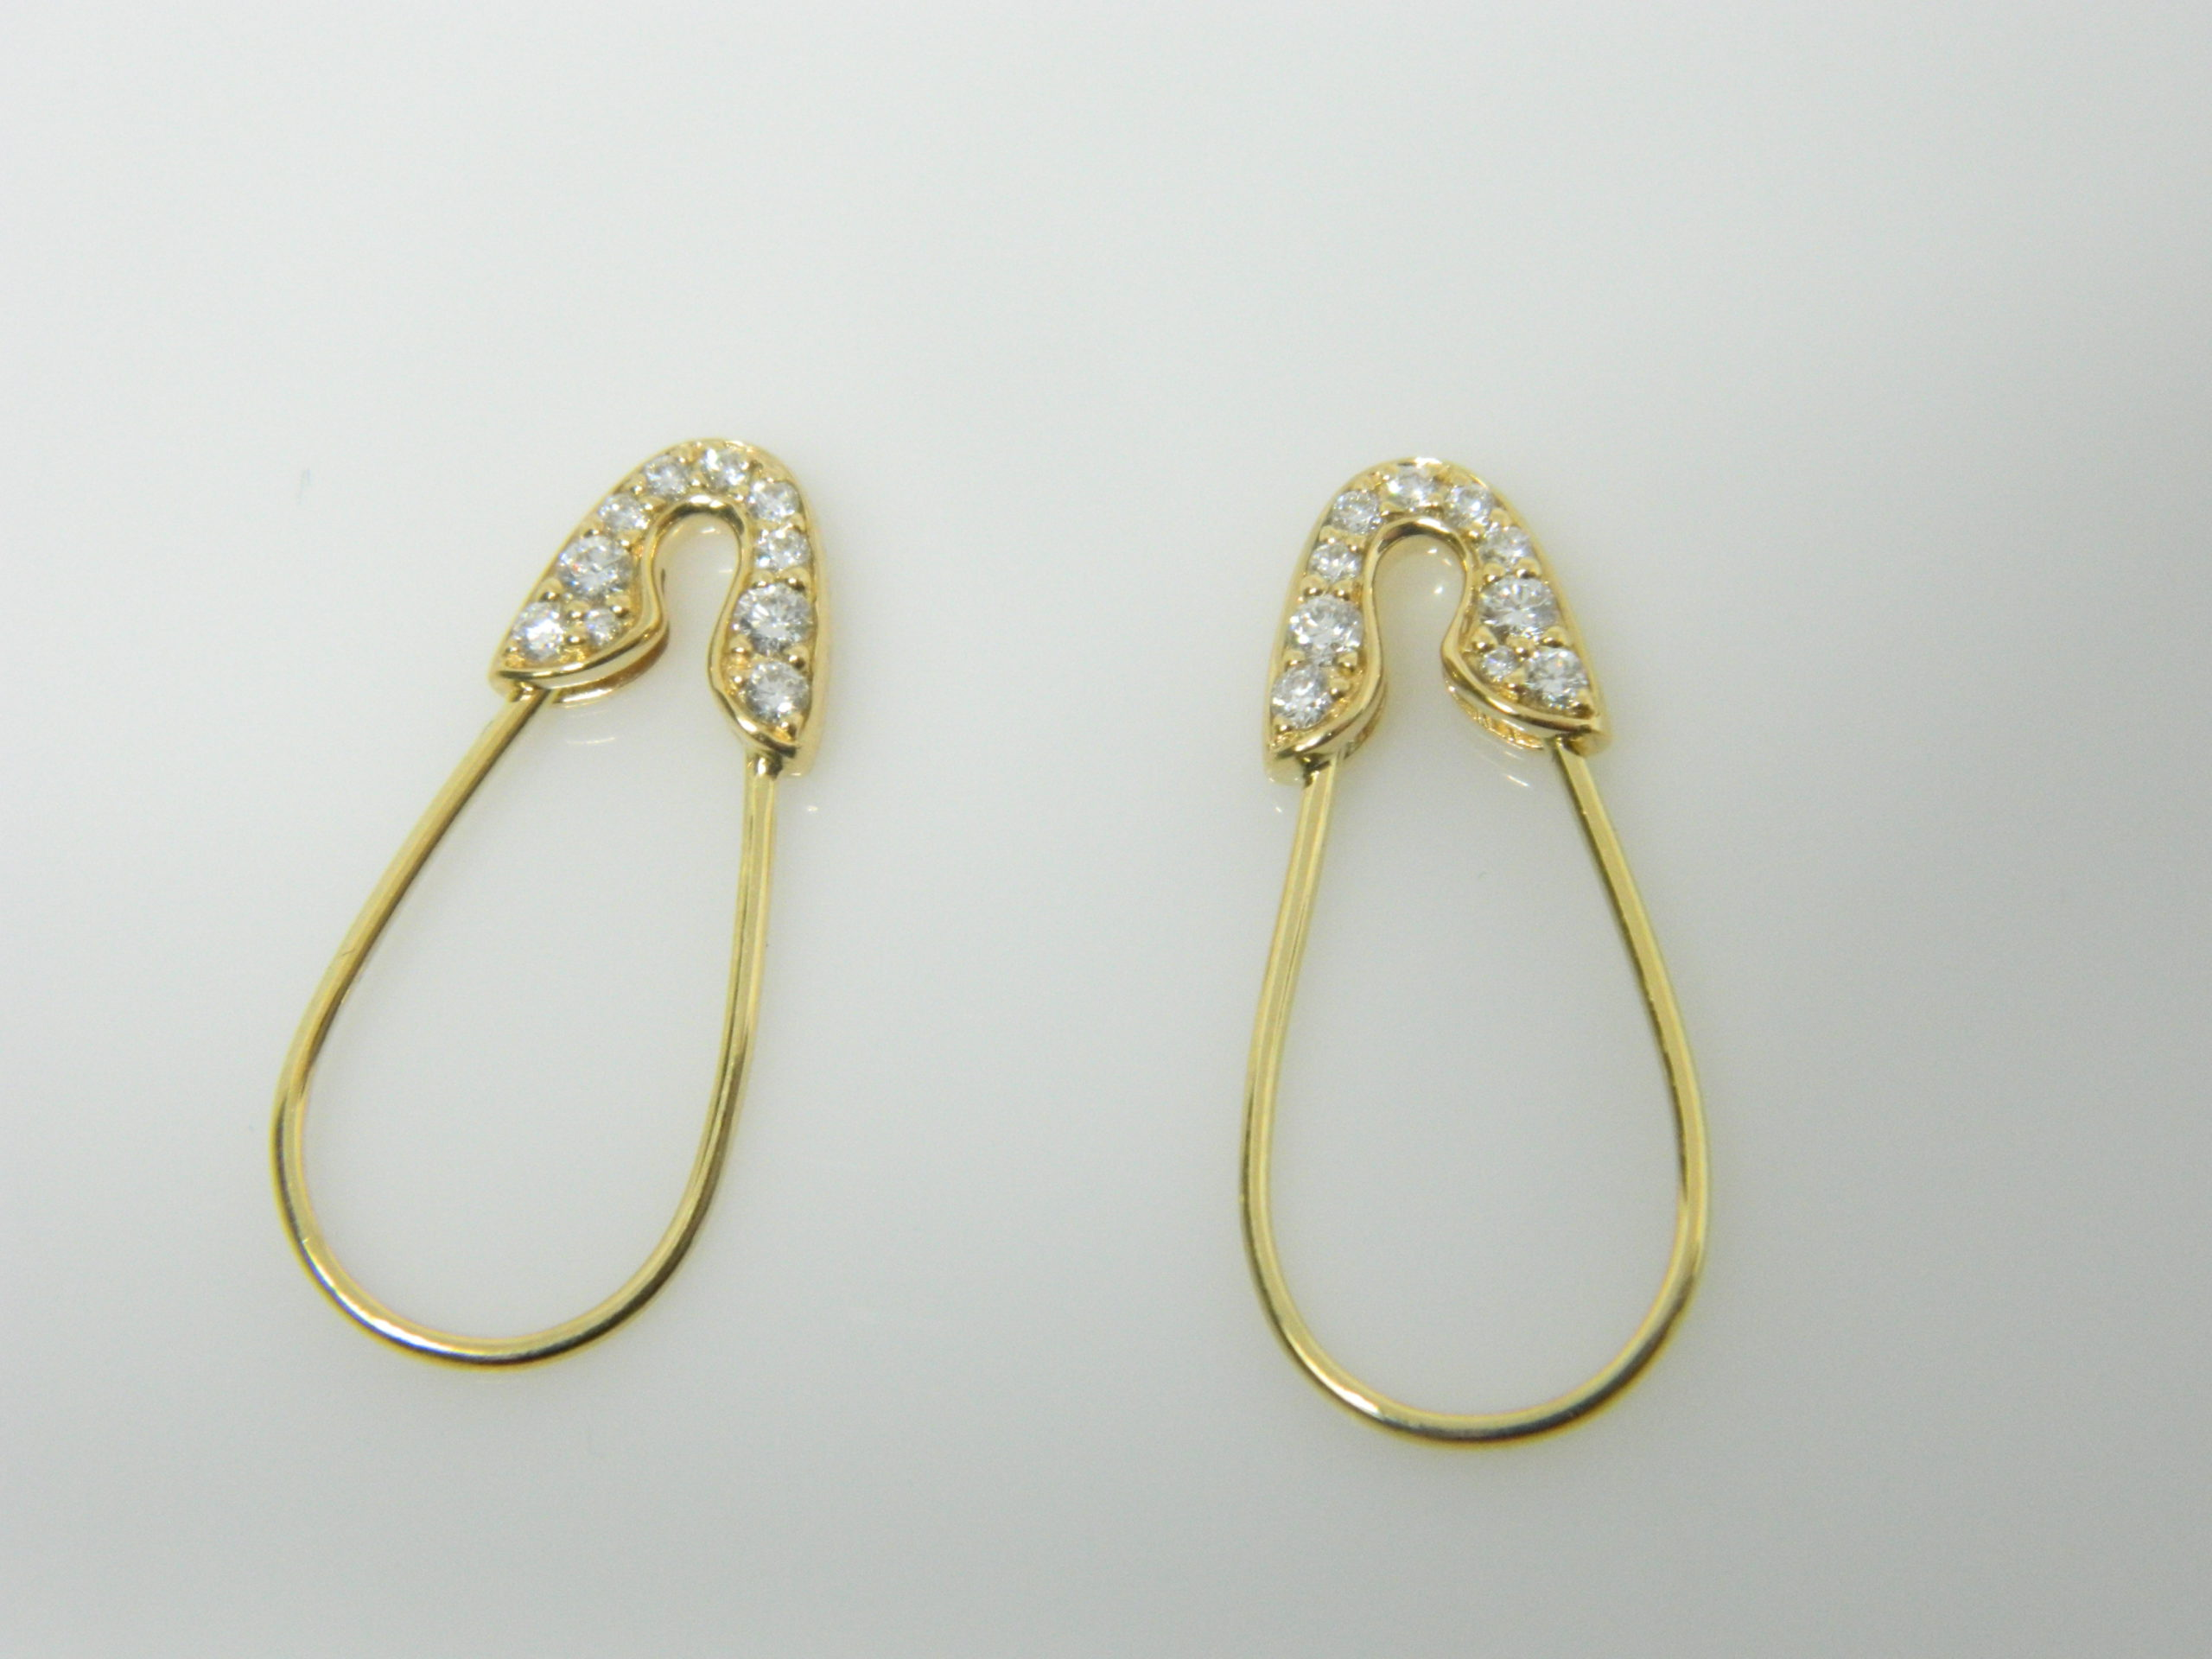 18 Karat Yellow Gold Drop Mounted Safety Pin Earrings with 20 Round Cut Diamonds weighing 0.24cts - 23mm